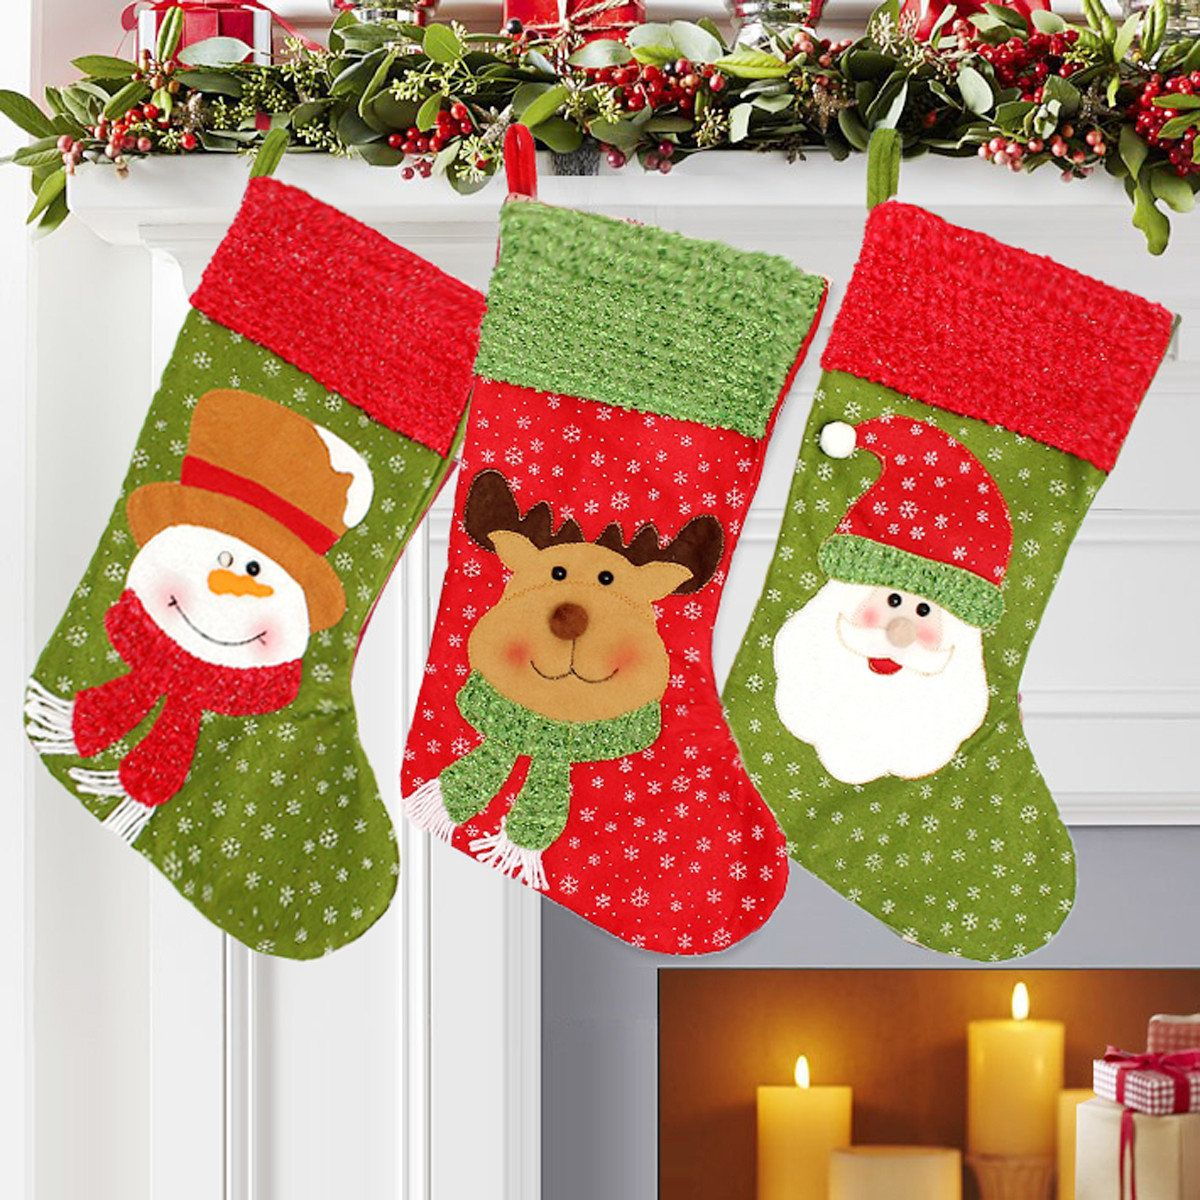 Christmas tree hanging decorations new parachute santa claus snowman - Christmas Santa Clau Snowman Elk Stockings Hanging Gift Bag Christmas Party Deocration